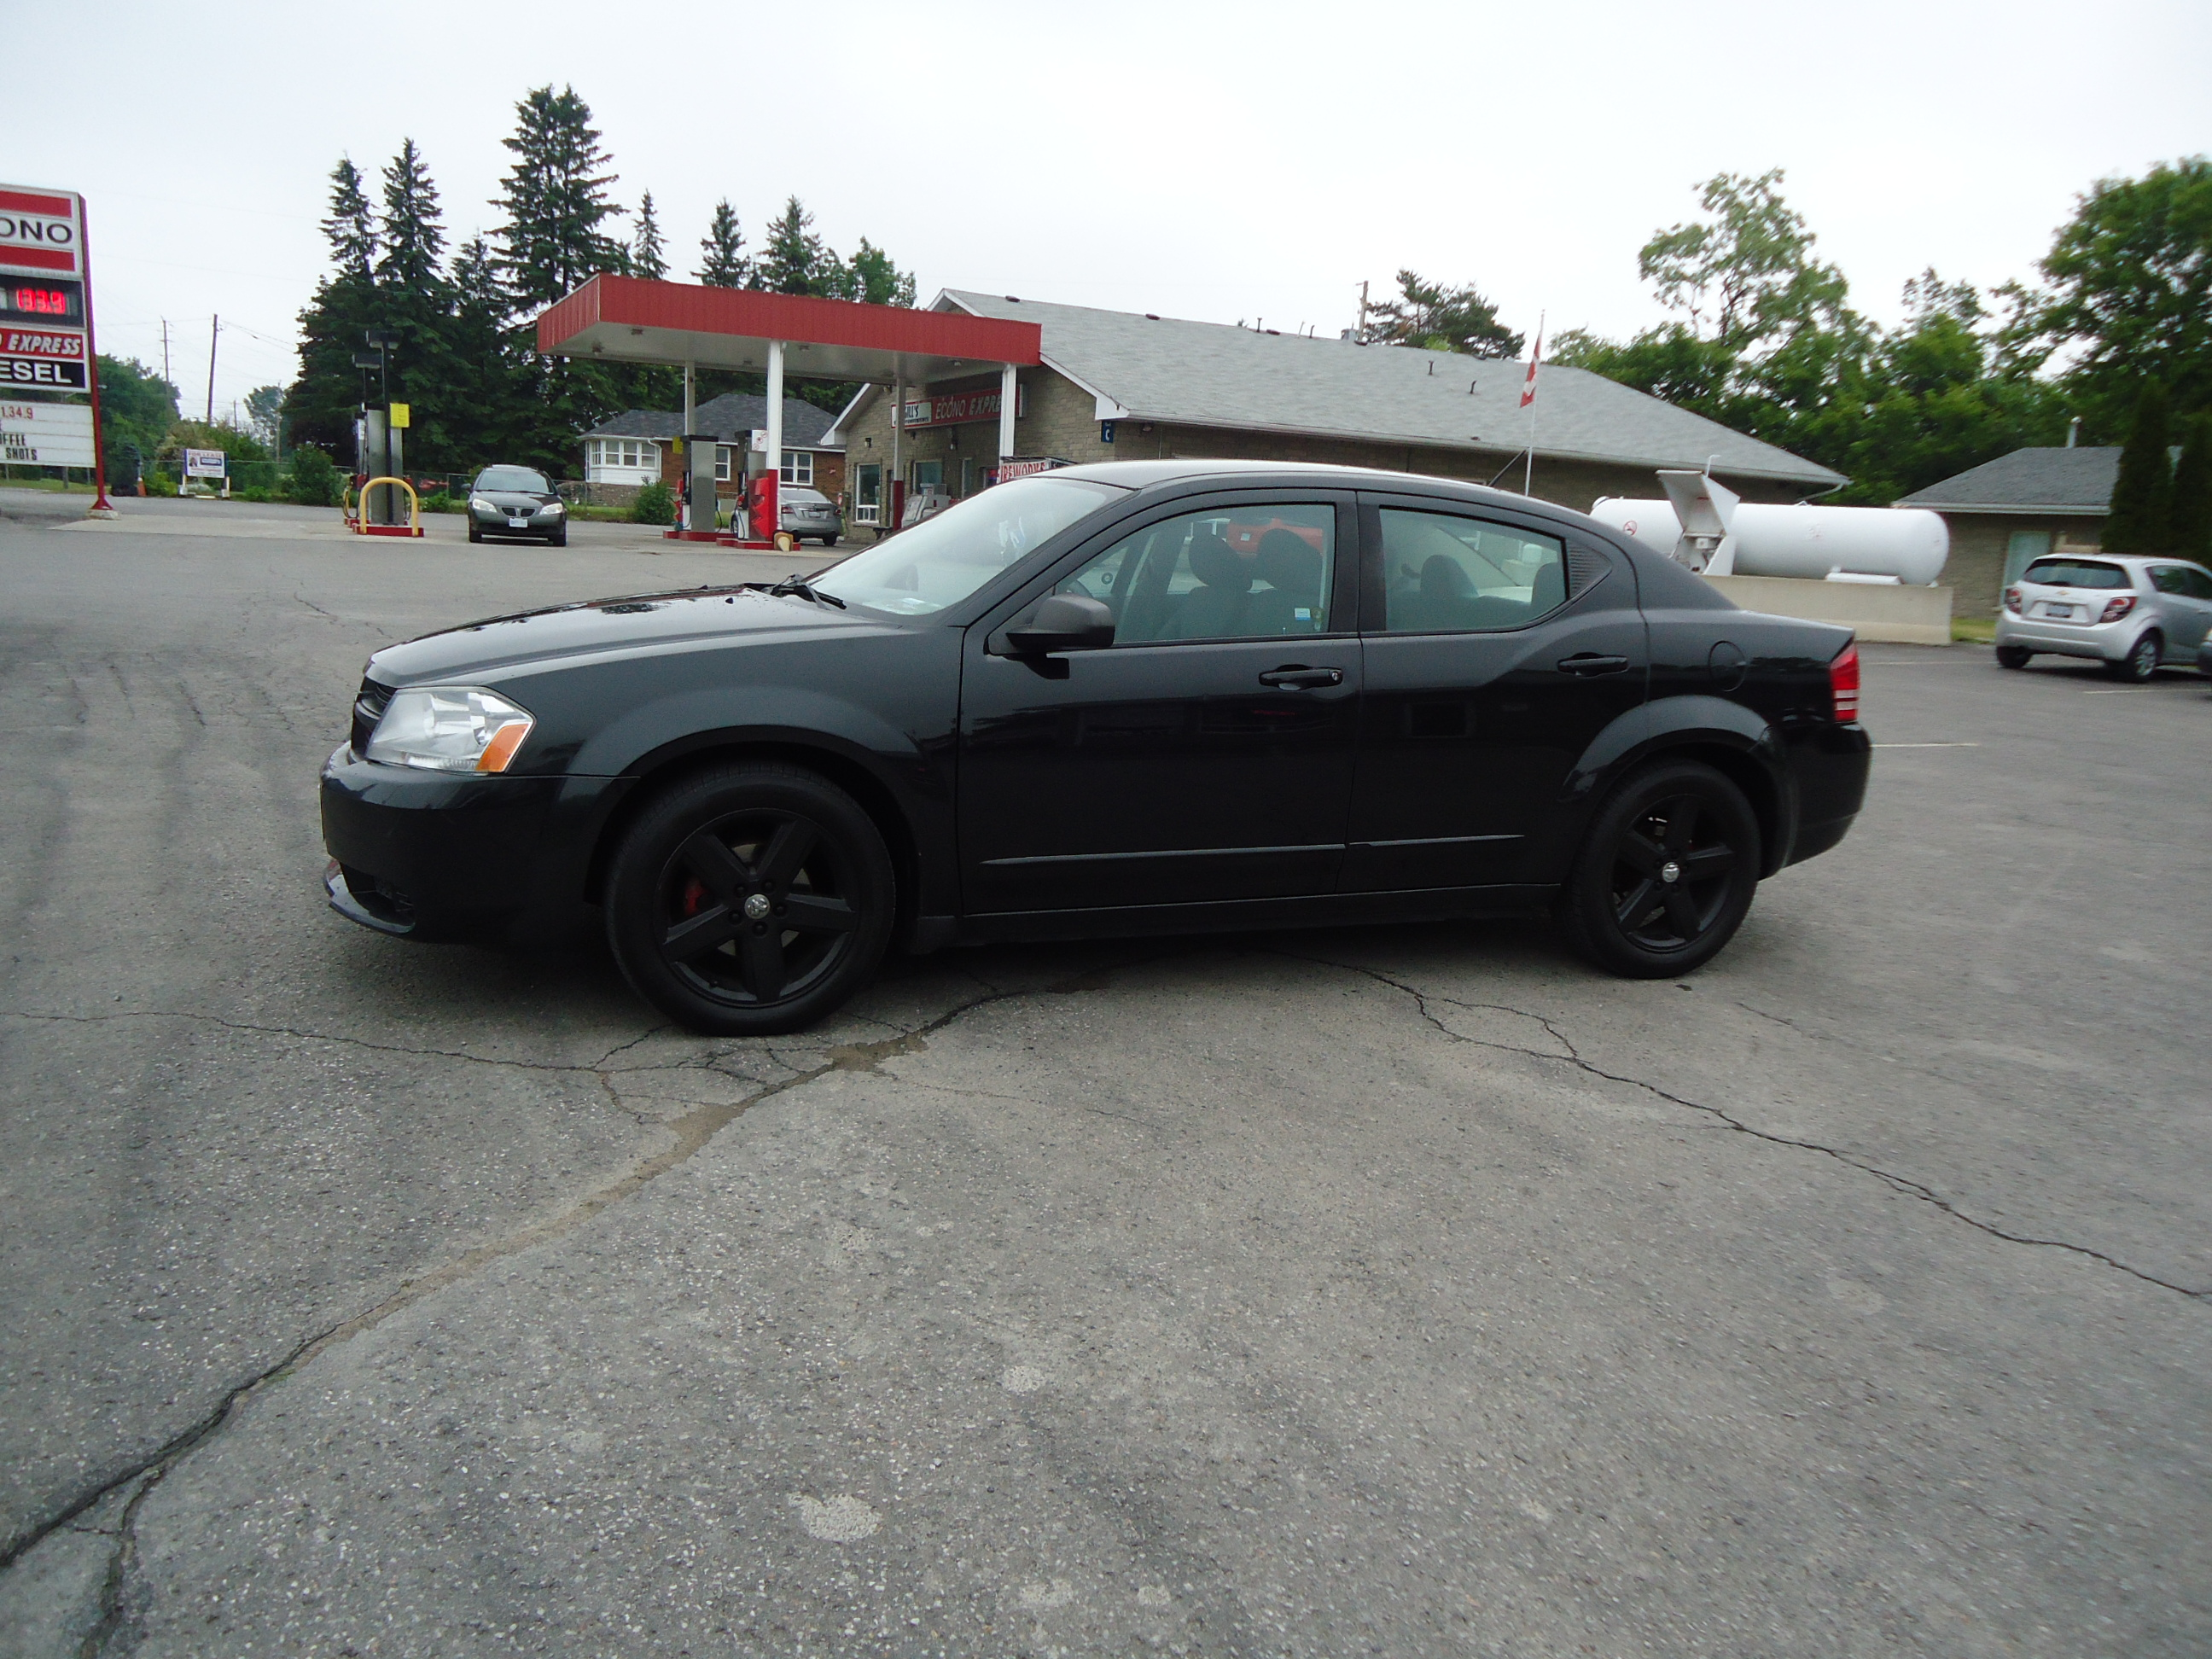 2008 Dodge Avenger Sxt Black - Viewing Gallery